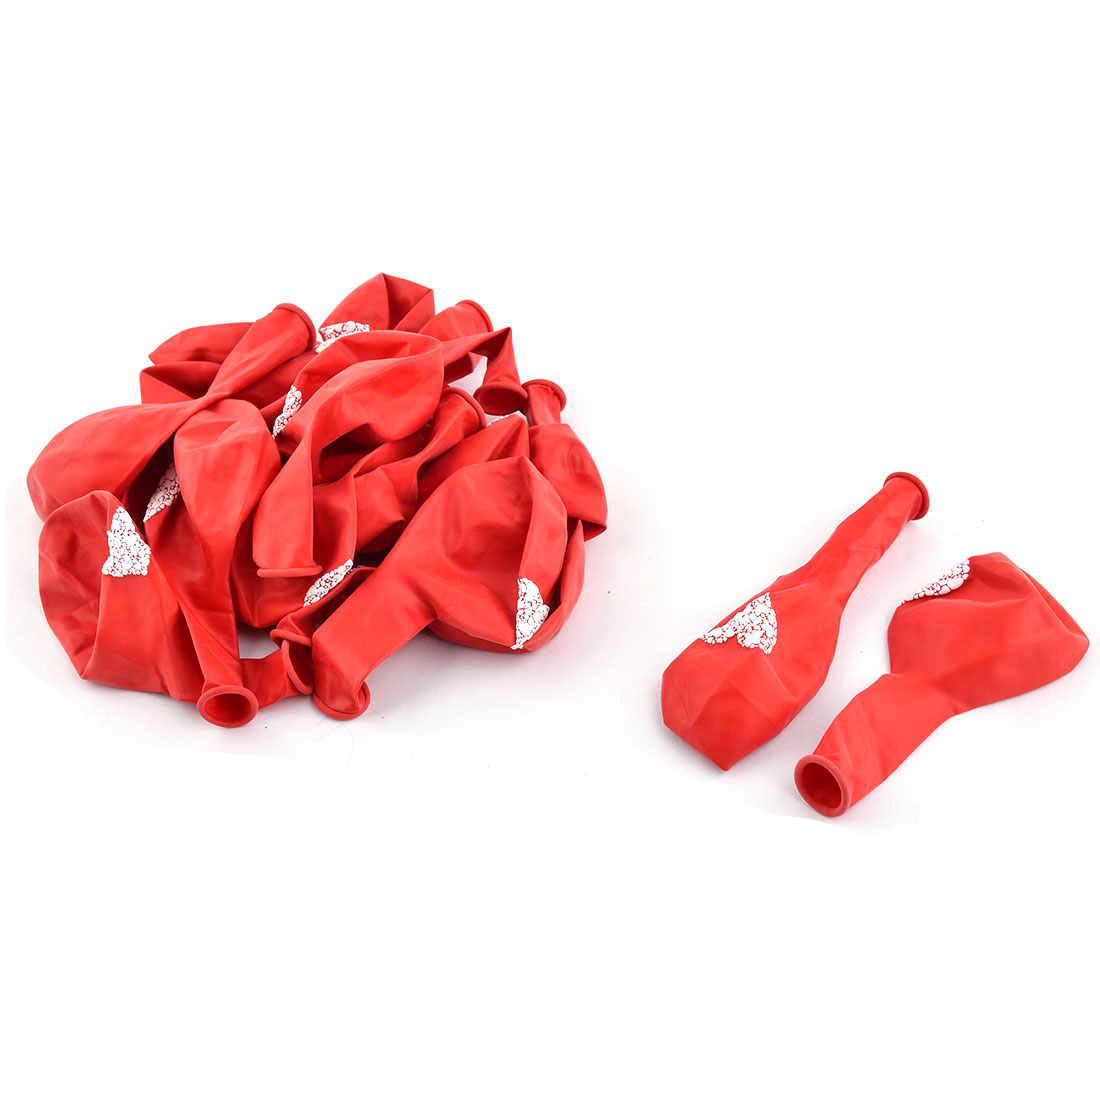 Unique Bargains Wedding Latex Heart Pattern Ornament Balloons Red 12 Inches 20 Pcs